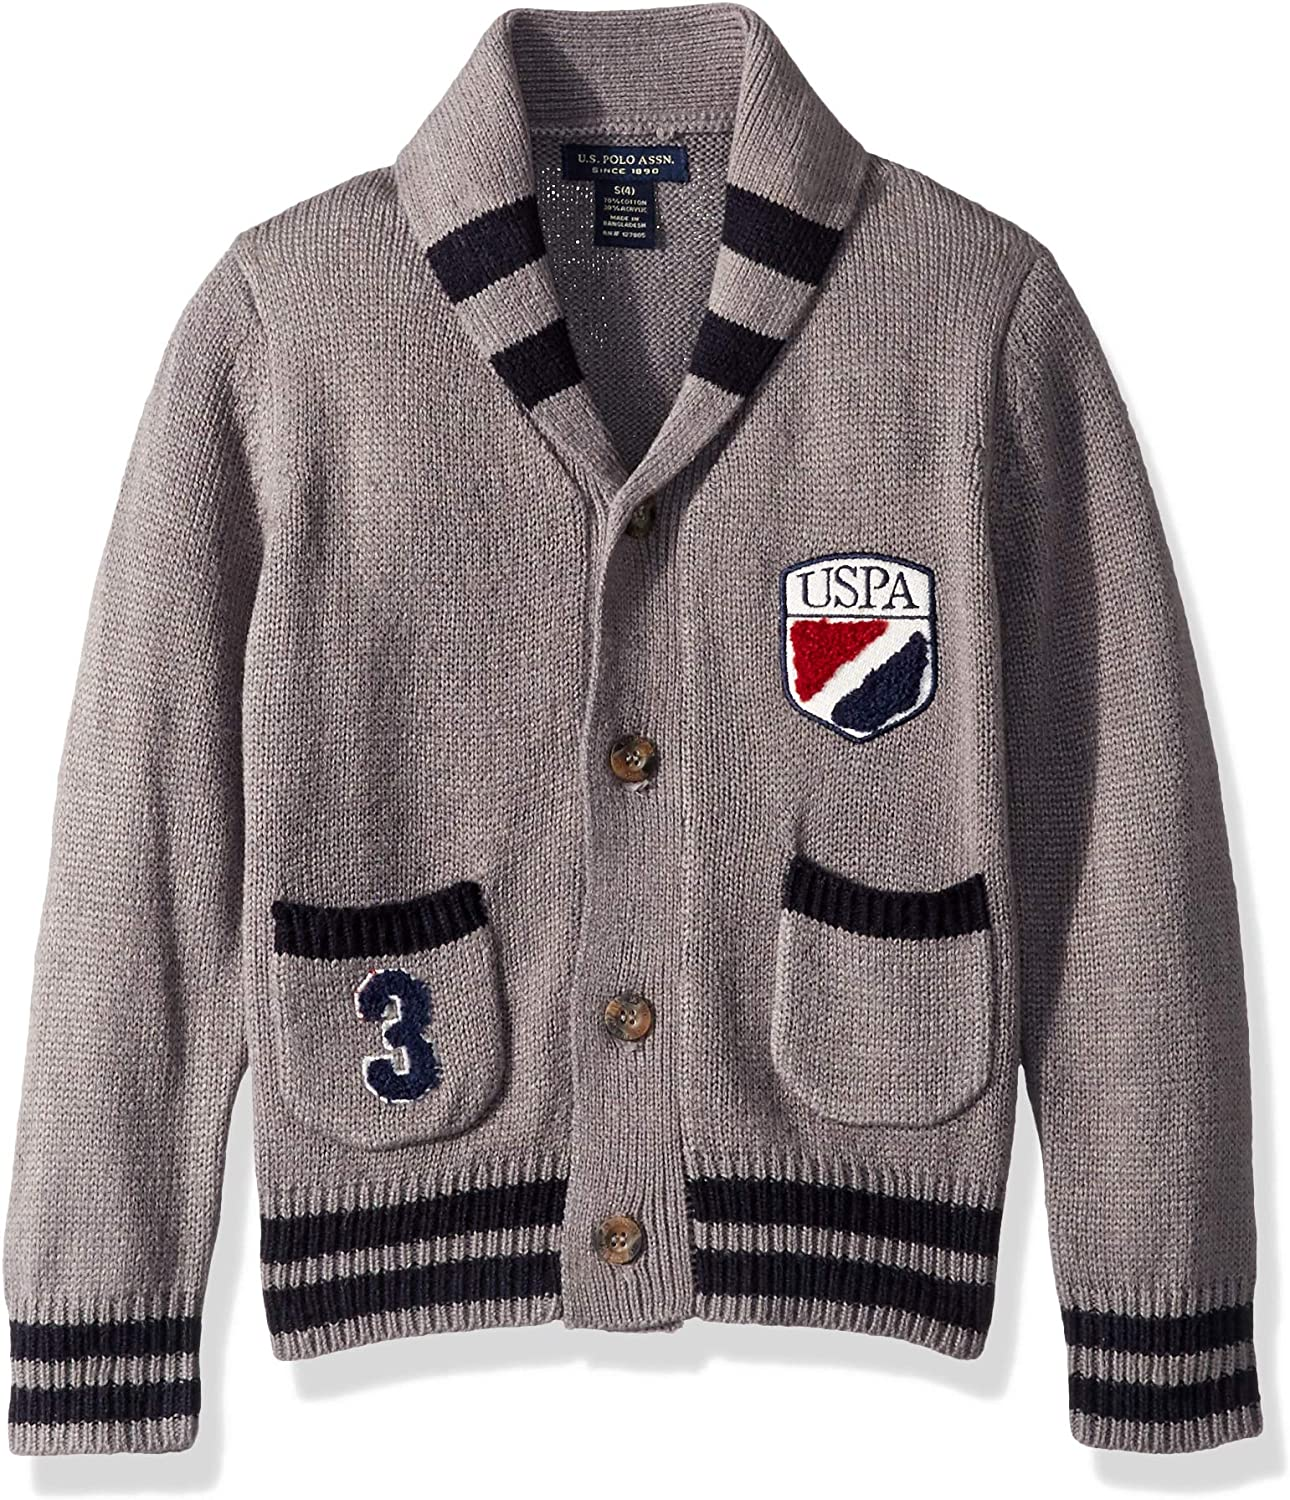 Boys Cardigan Sweater Polo Assn U.S